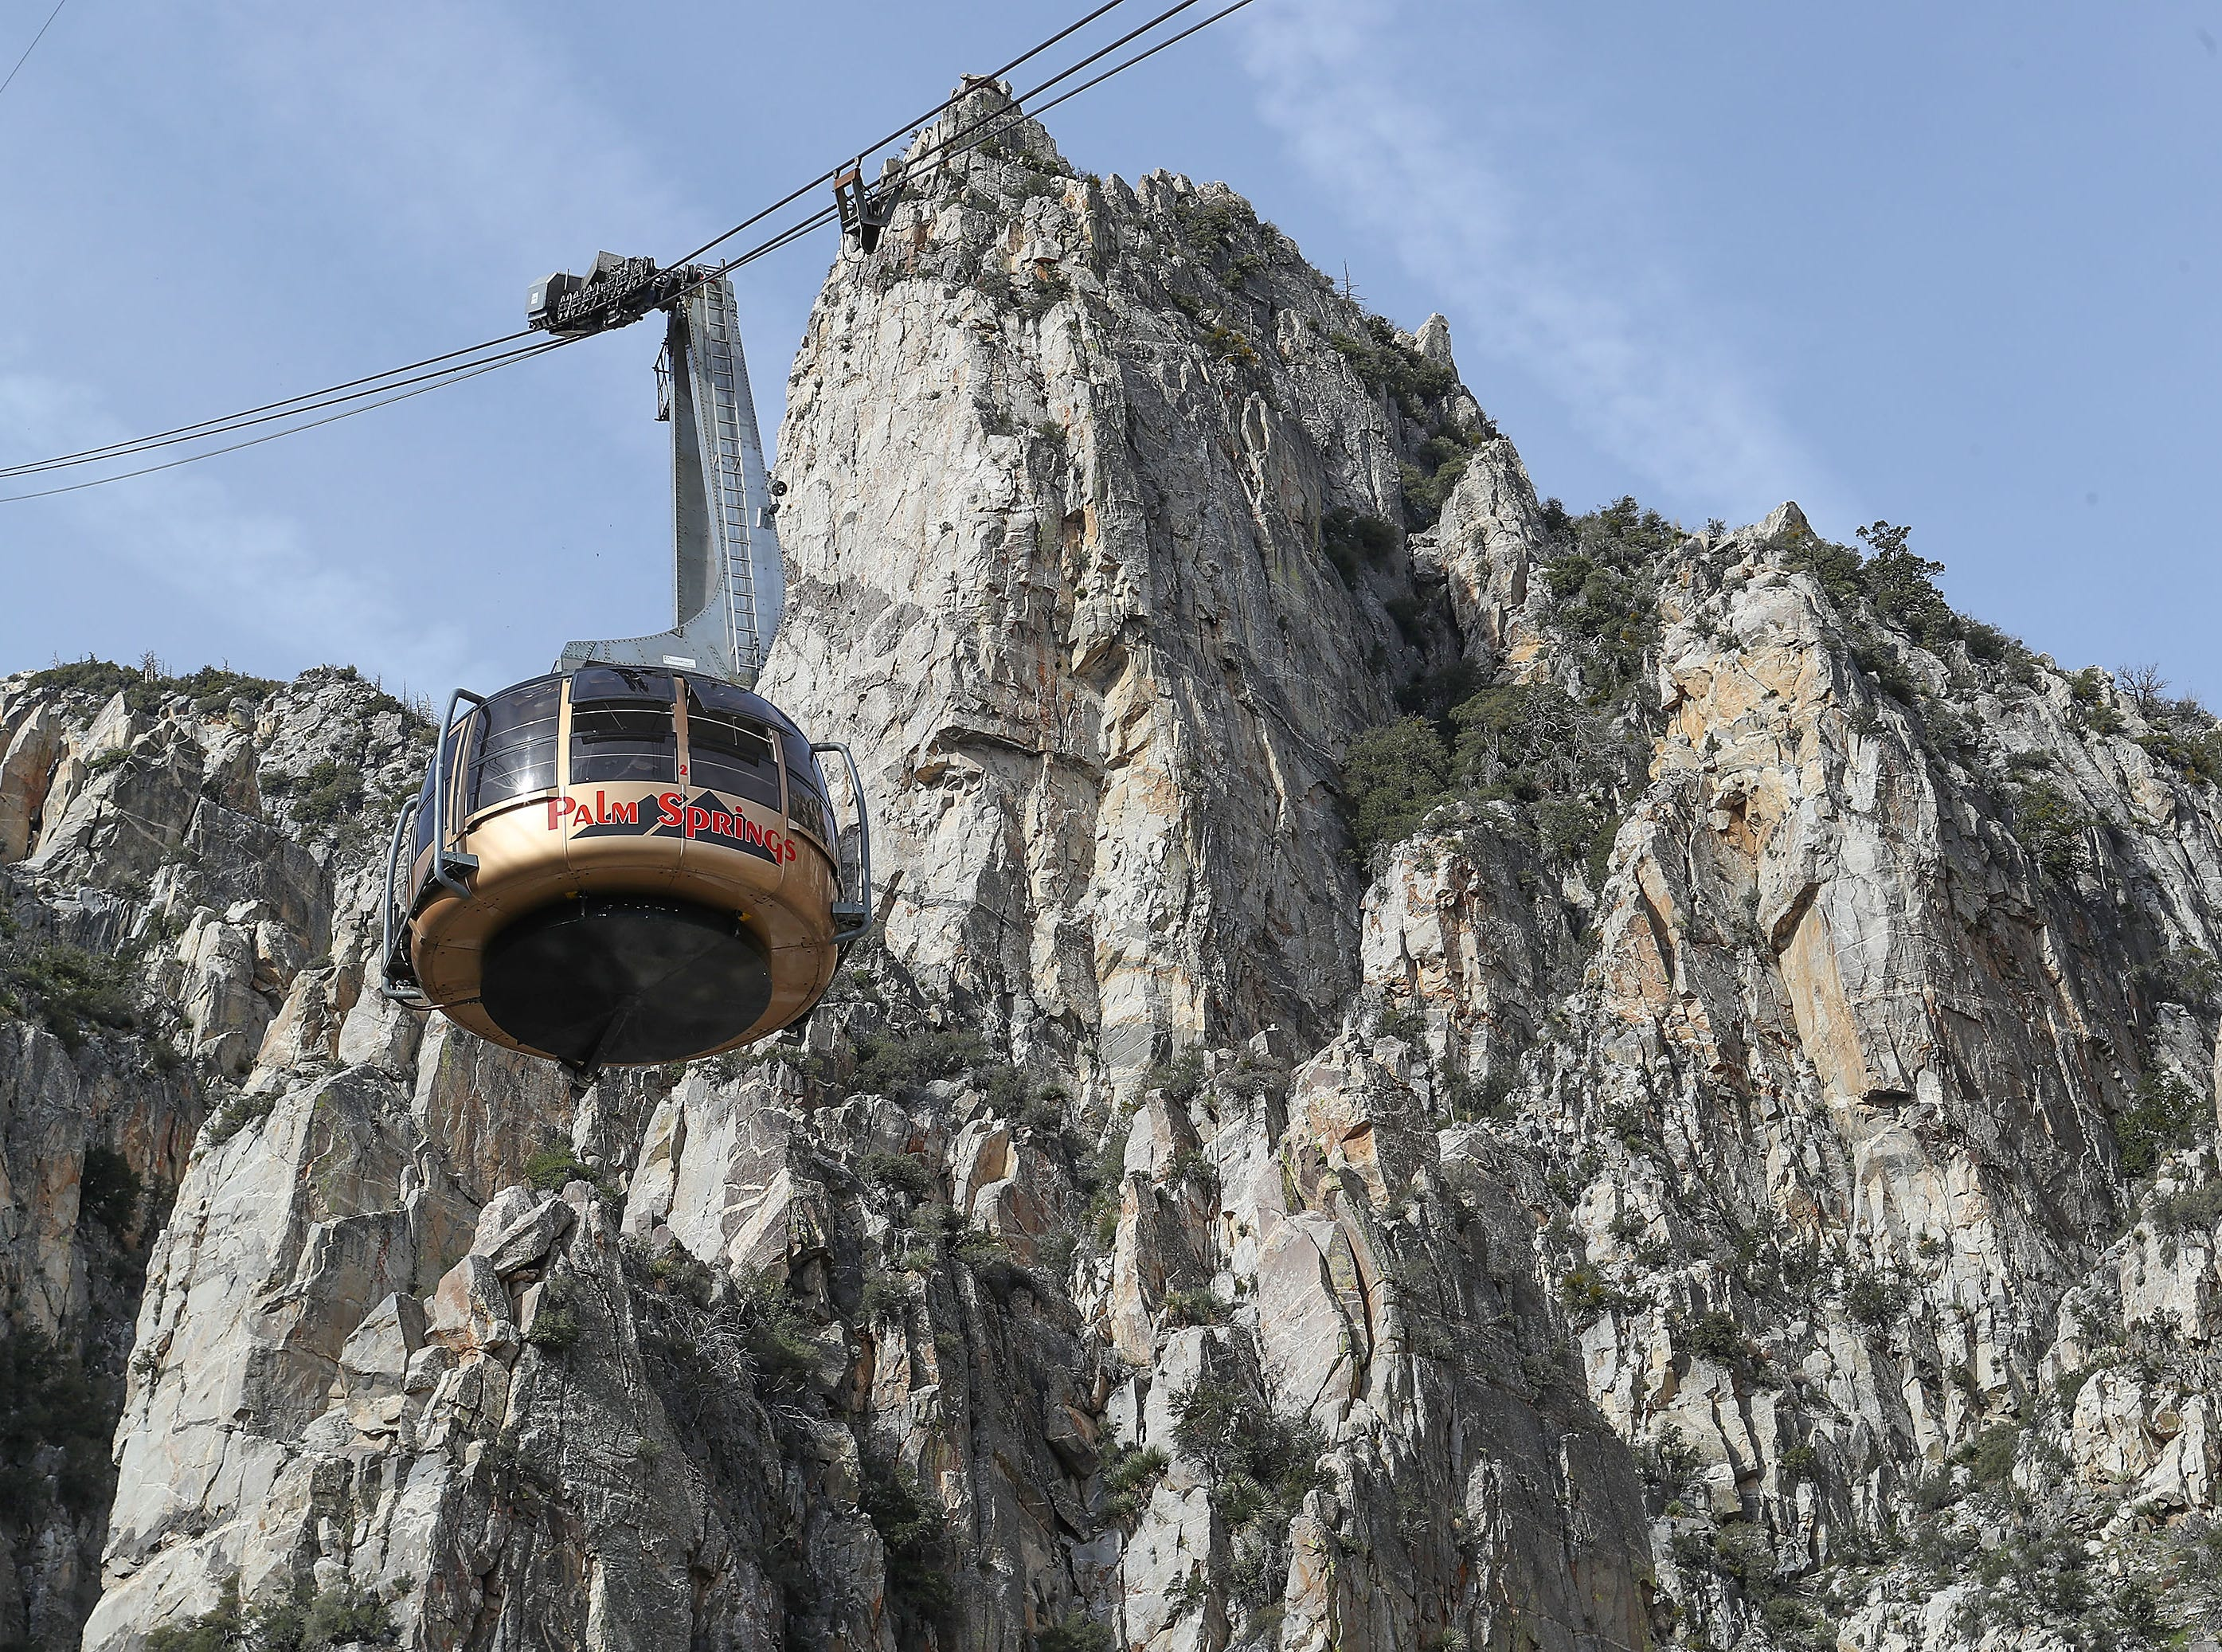 A tramcar at the Palm Springs Aerial Tramway makes its way down Mount San Jacinto Monday, April 1, 2019. The tramway reopened Monday after a February rainstorm washed away part of the road leading to the tram.